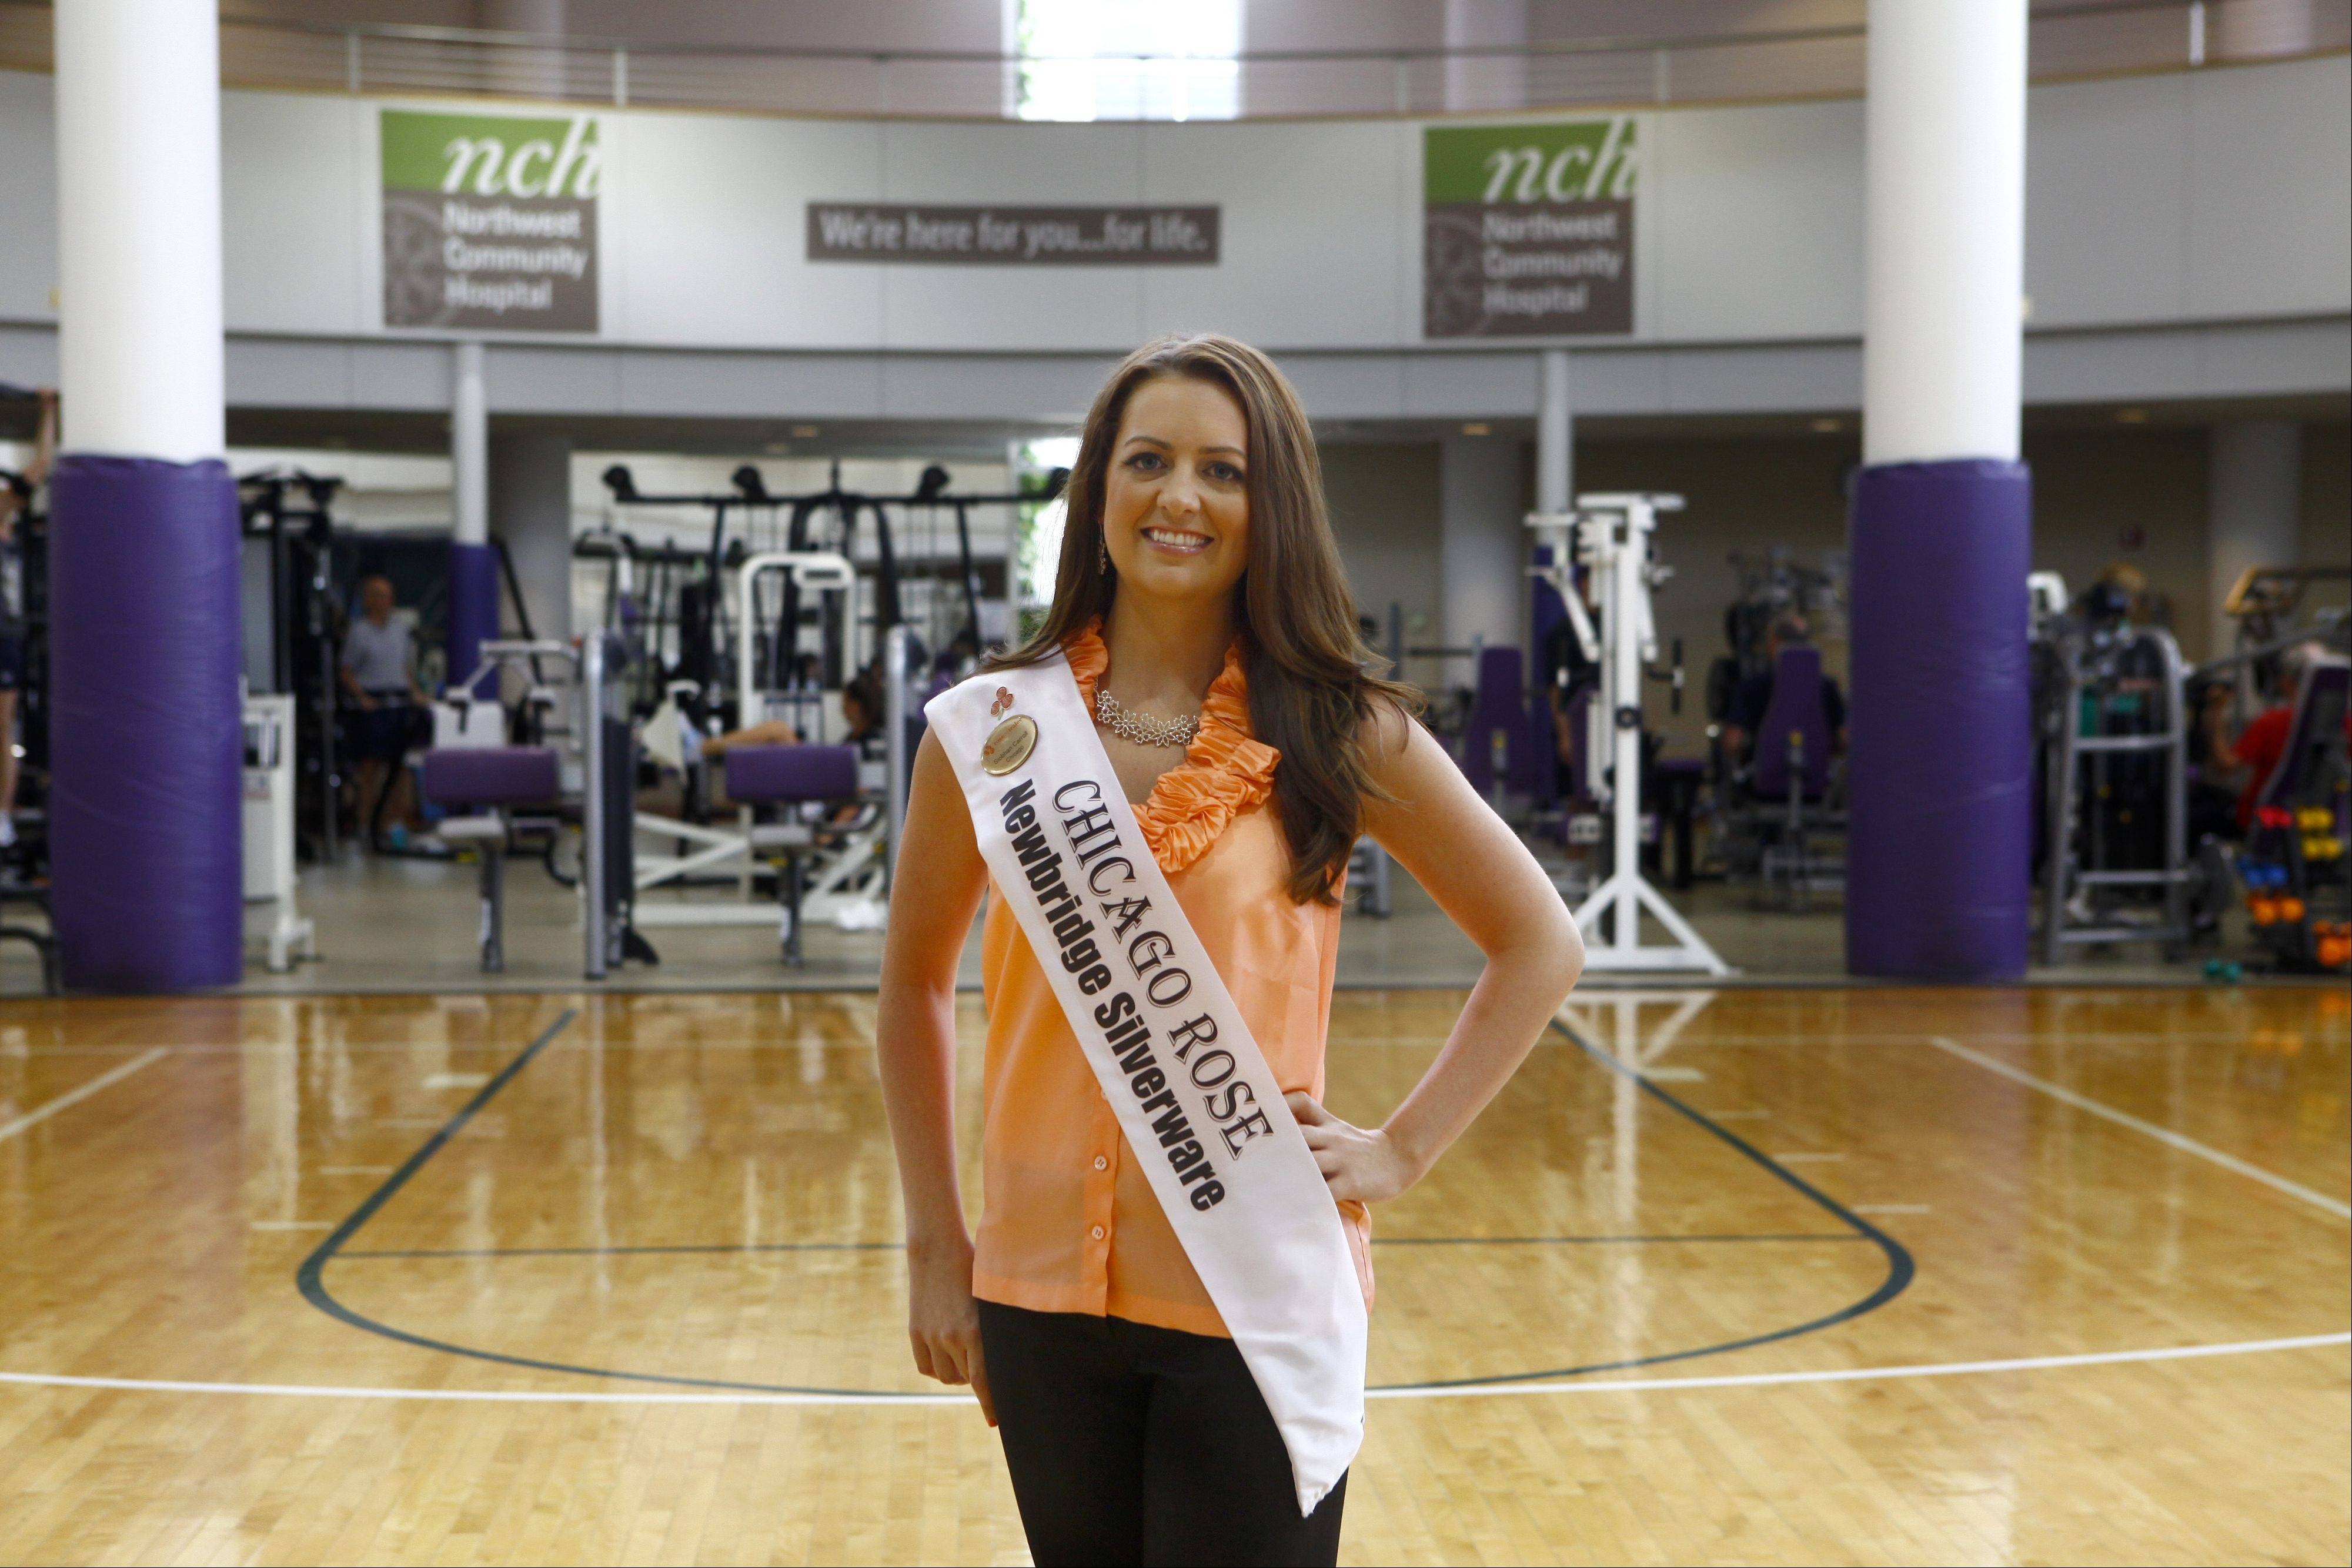 Siobhan Carroll, of Arlington Heights, an administration assistant at Northwest Community Hospital, will be representing Chicago's Irish community in the finals of the Rose of Tralee in Ireland. Carroll is one of 32 finalists from all over the world competing in next month's finals.